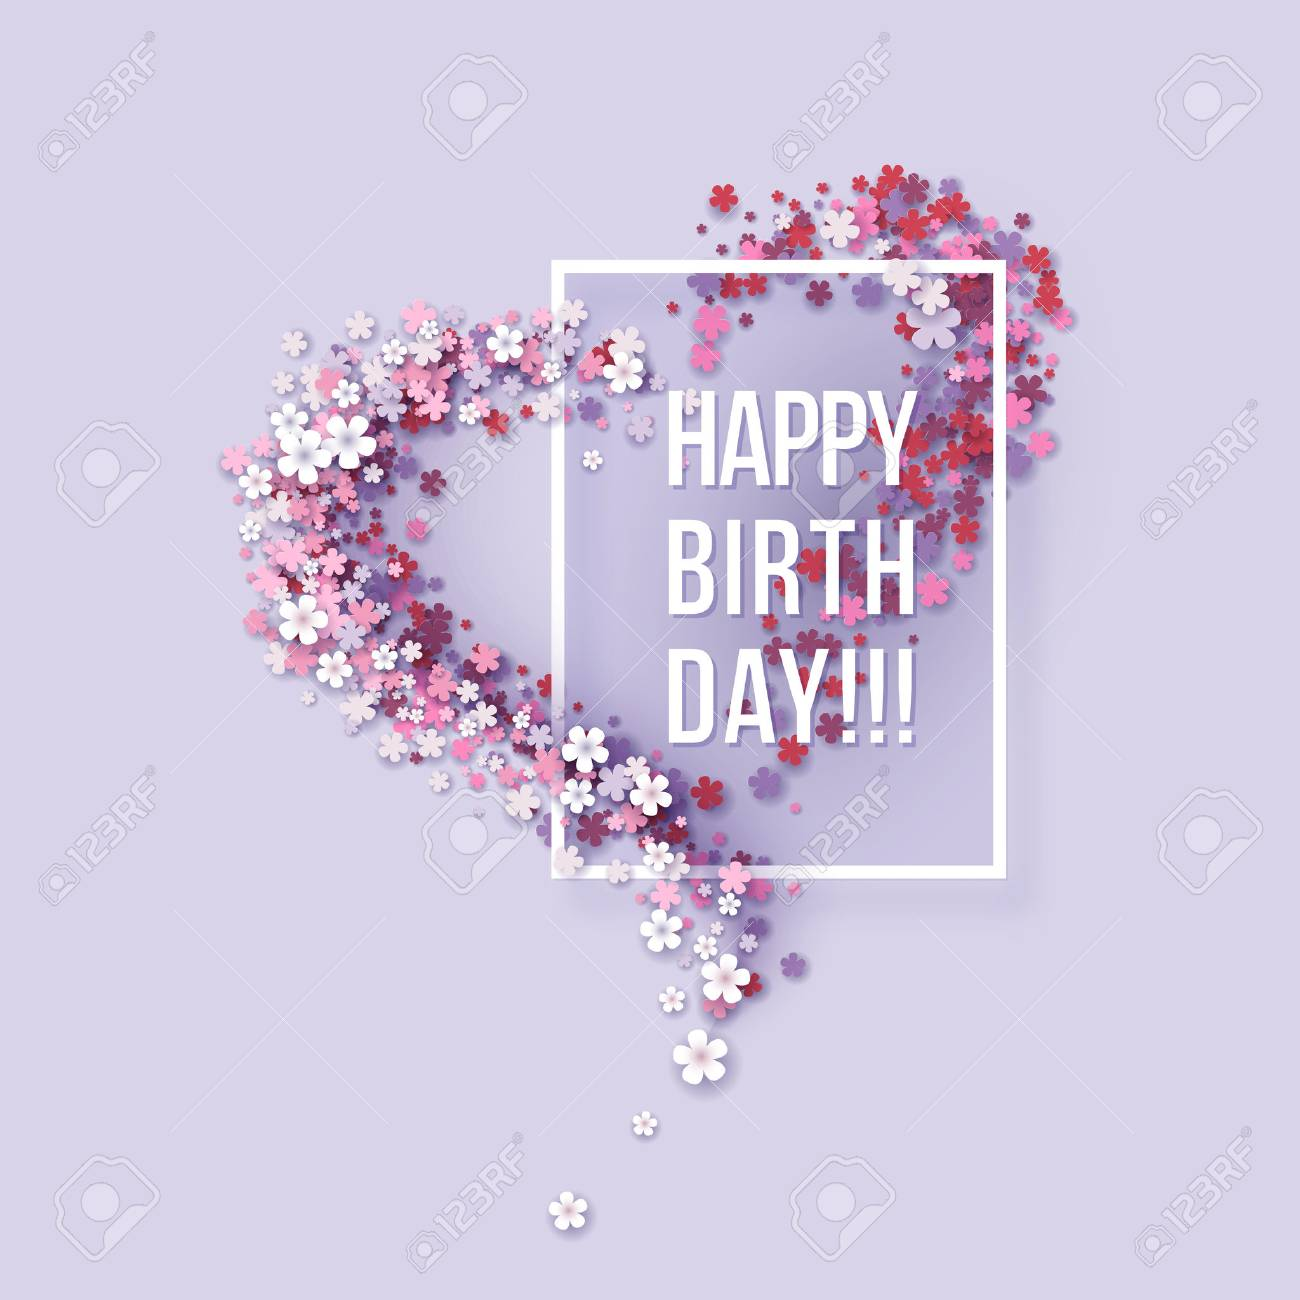 Colorful Paper cut Floral Greeting card. Happy birthday title texts poster design. Frame flowers heart shaped. Trendy Design Template. Vector illustration - 84446117